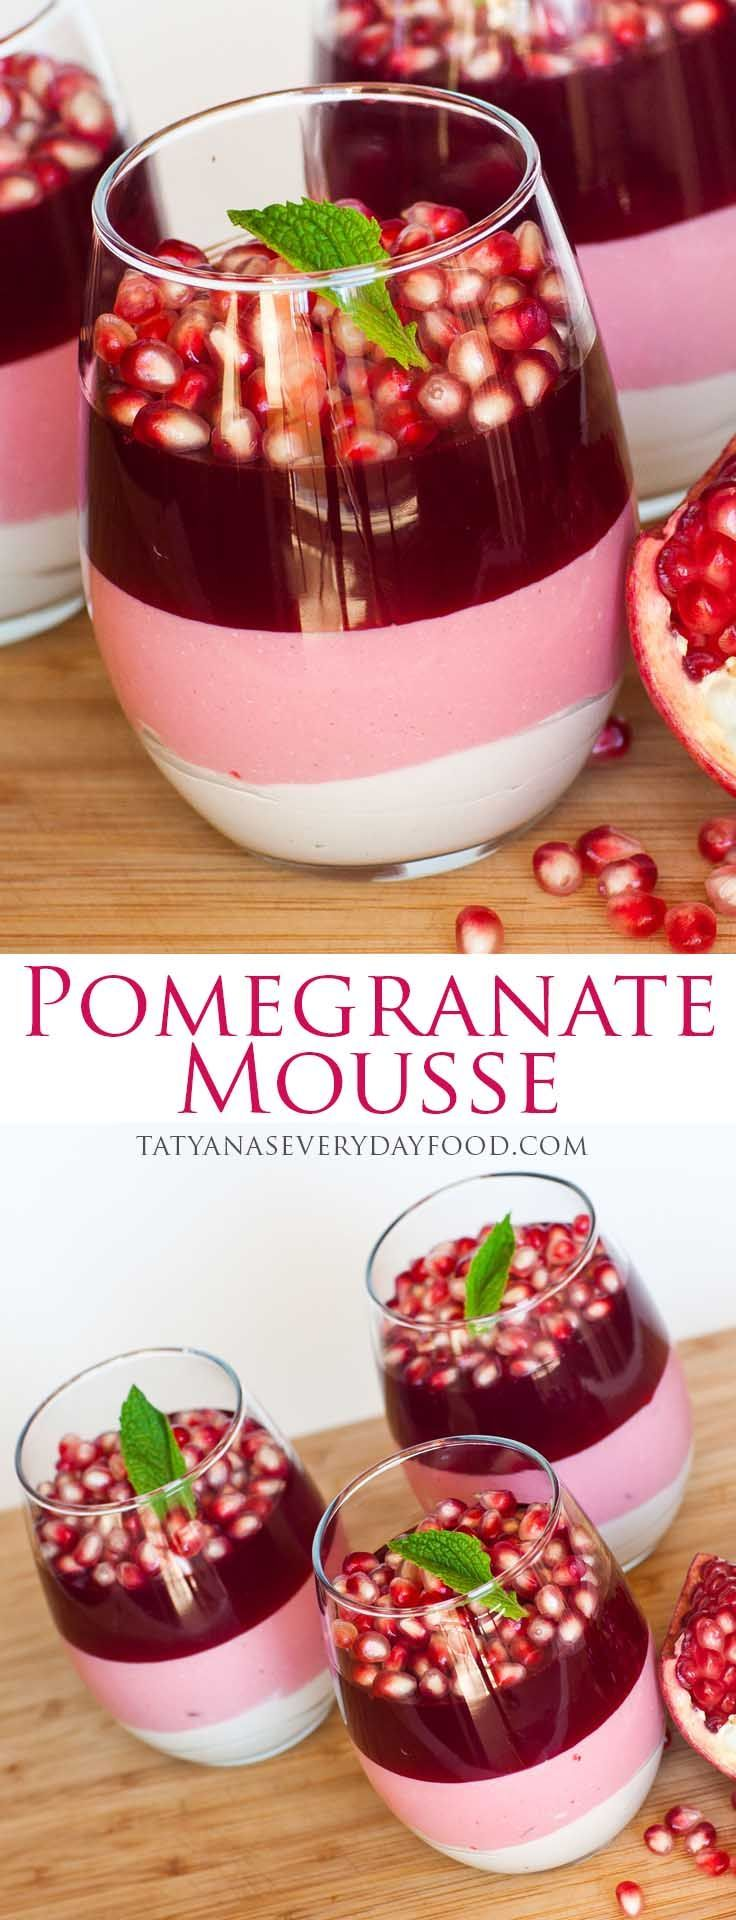 Triple Layer Pomegranate Mousse Dessert - No-Bake! With video recipe by Tatyana's Everyday Food